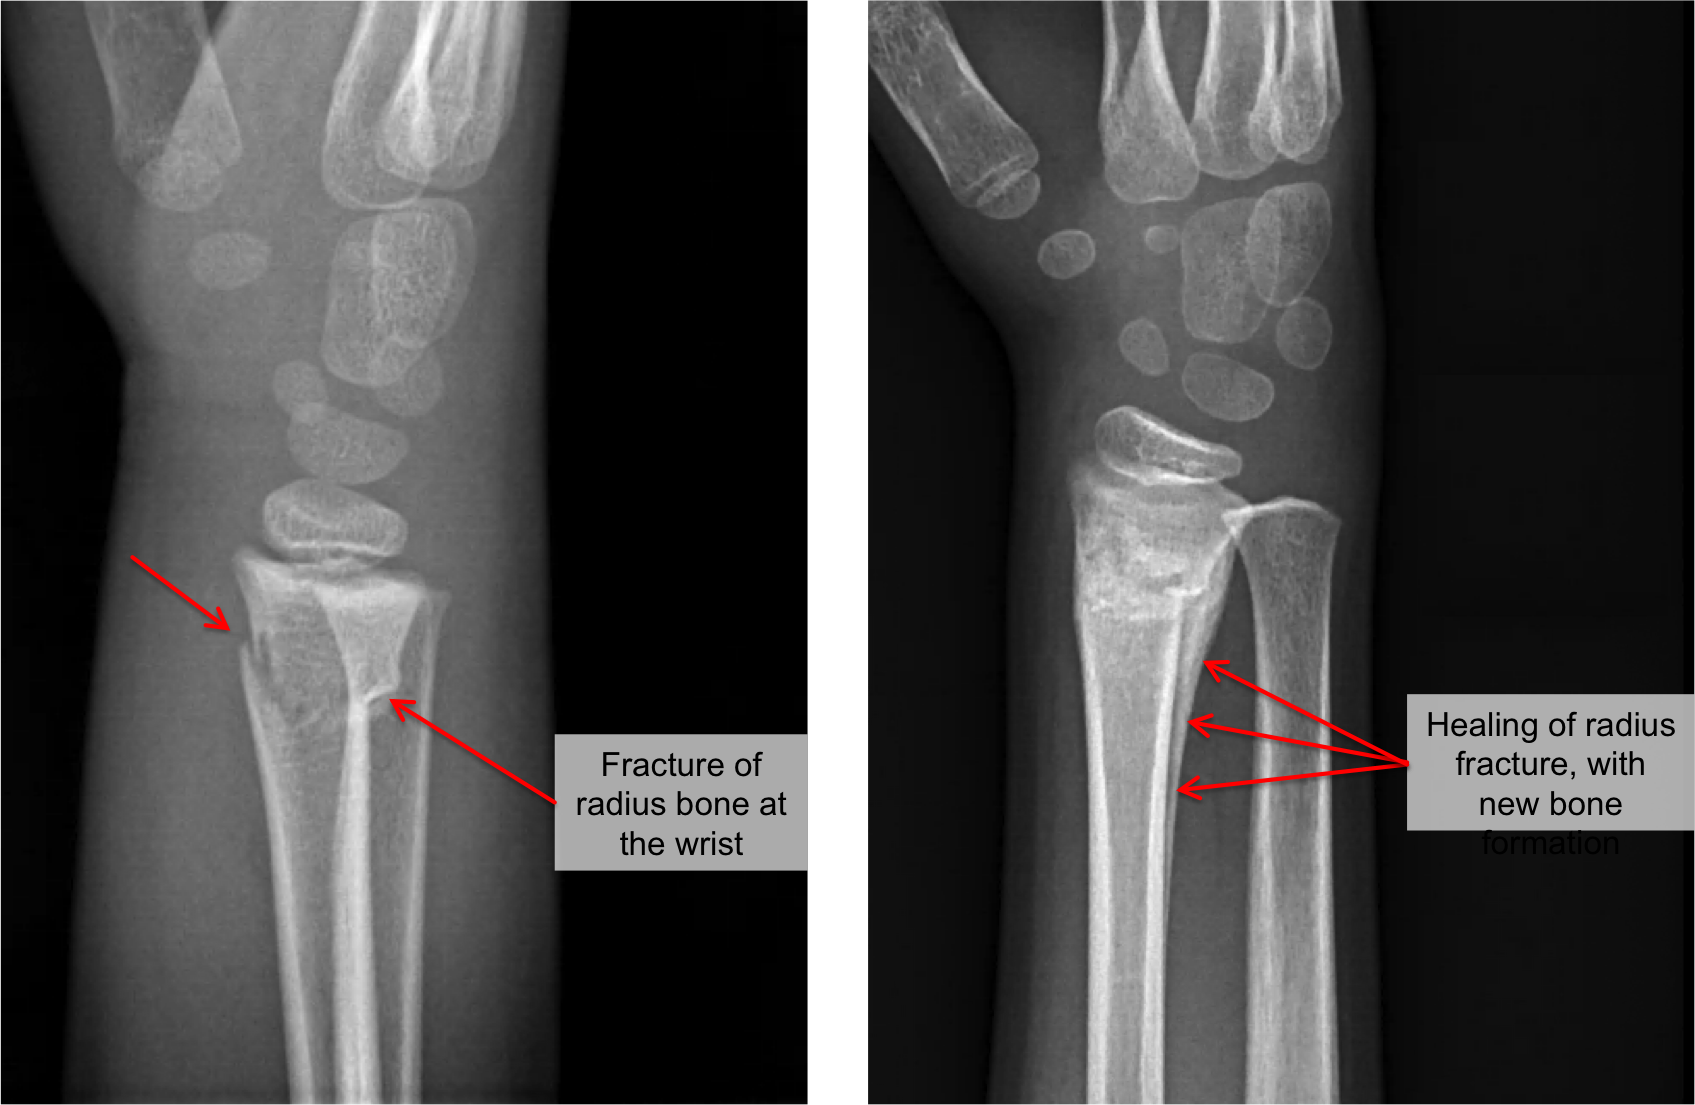 Example 2.   Left:  more severe fracture that extends completely across the radius bone.  Right:  Healing after 6 weeks, showing a new layer of bone formation around the fracture. With more time, the fracture will disappear, as the new bone blends into the old bone.